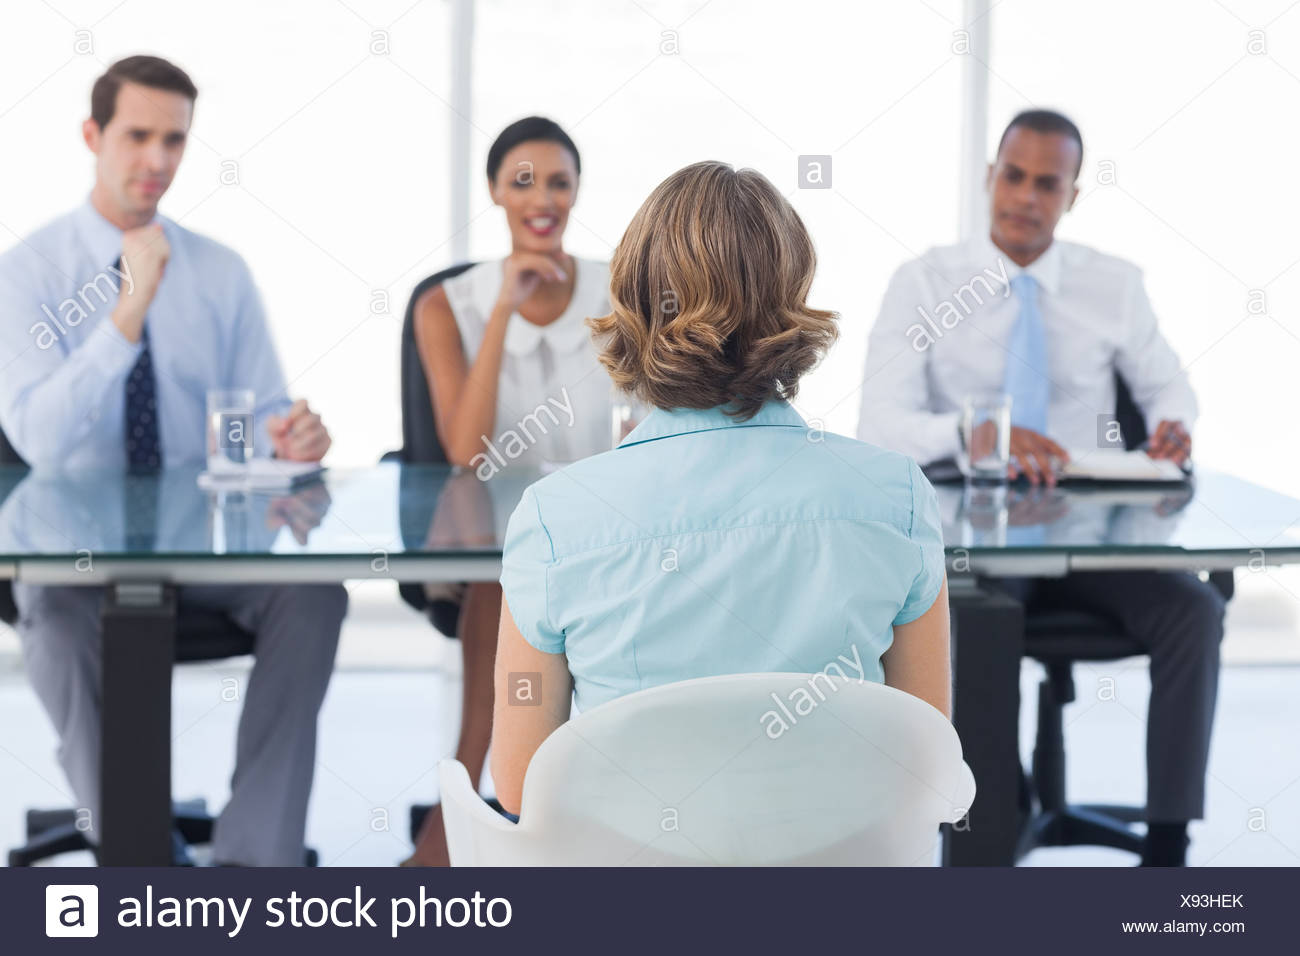 Female applicant sitting during a job interview - Stock Image